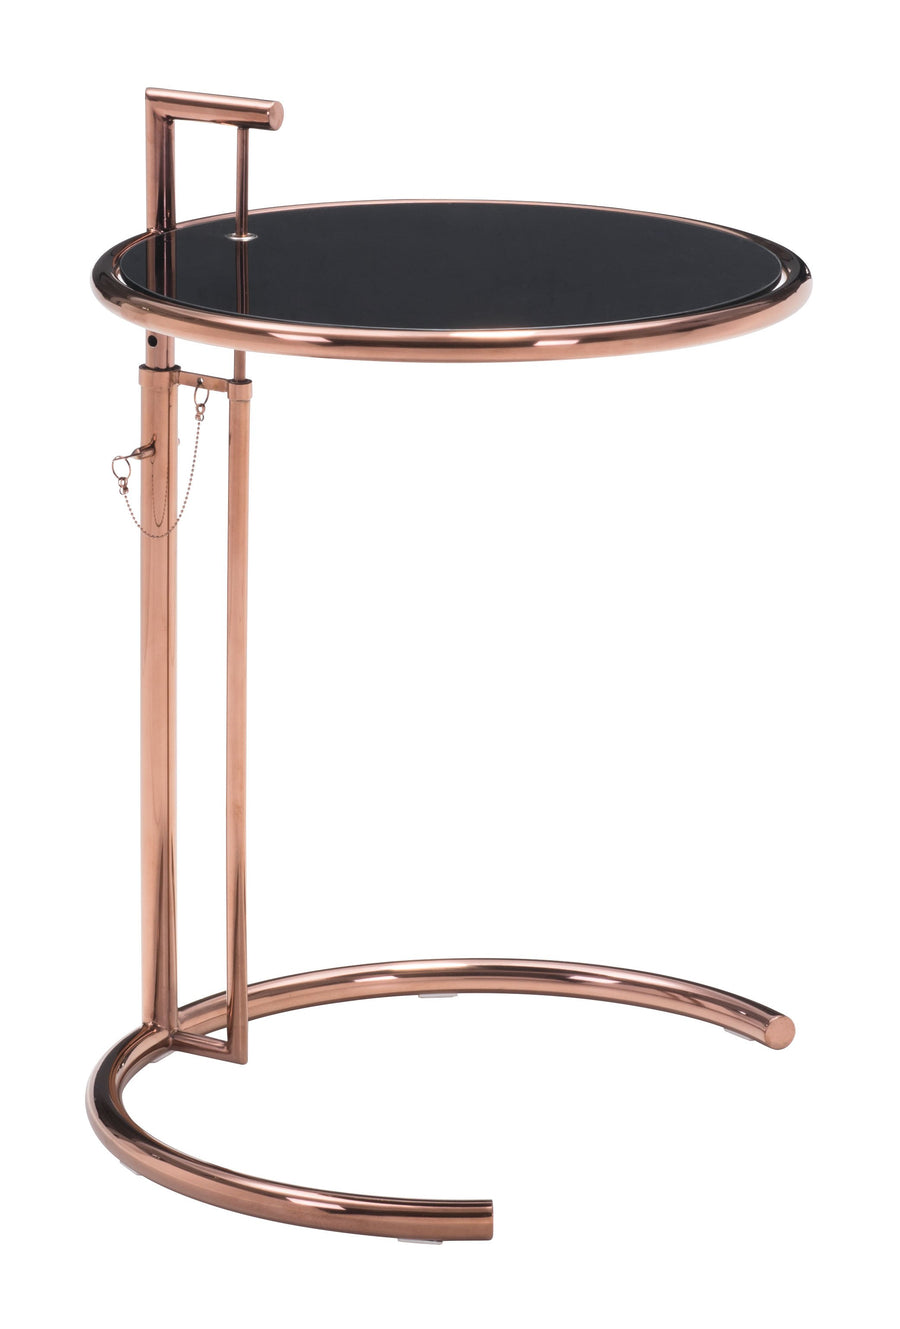 EILEEN GREY TABLE ROSE GOLD image